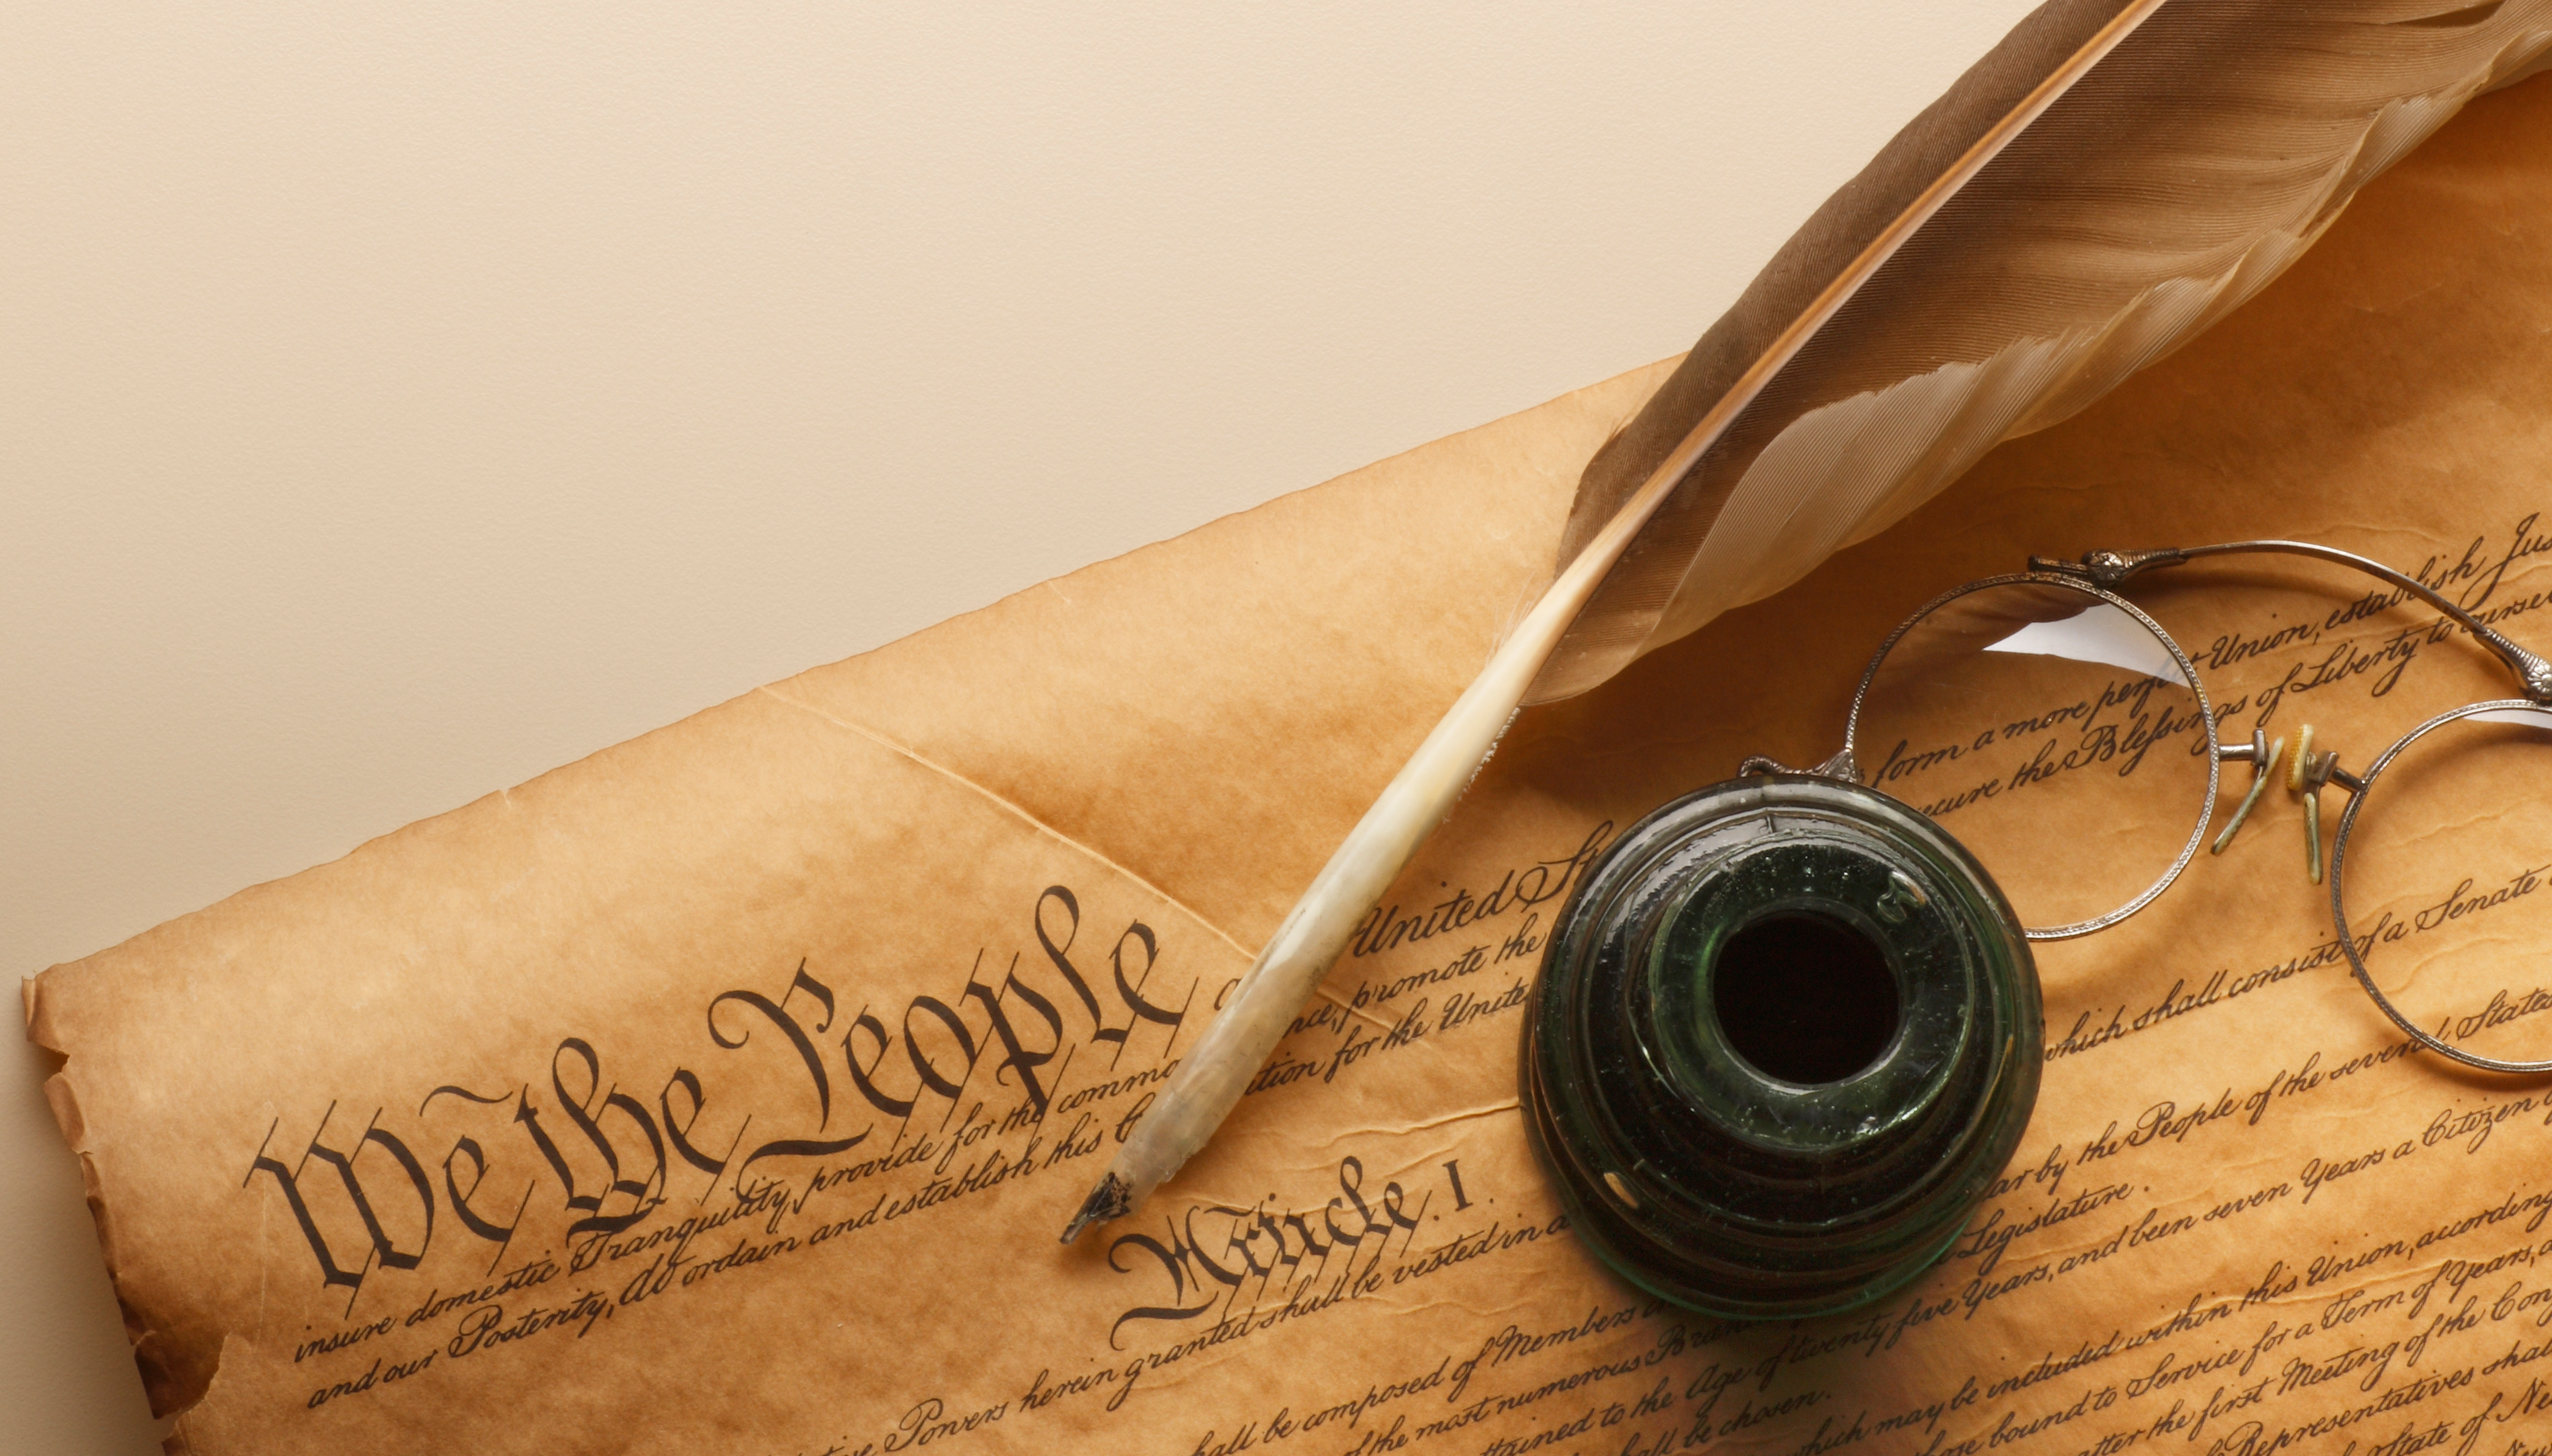 Constitution with a quill and inkwell